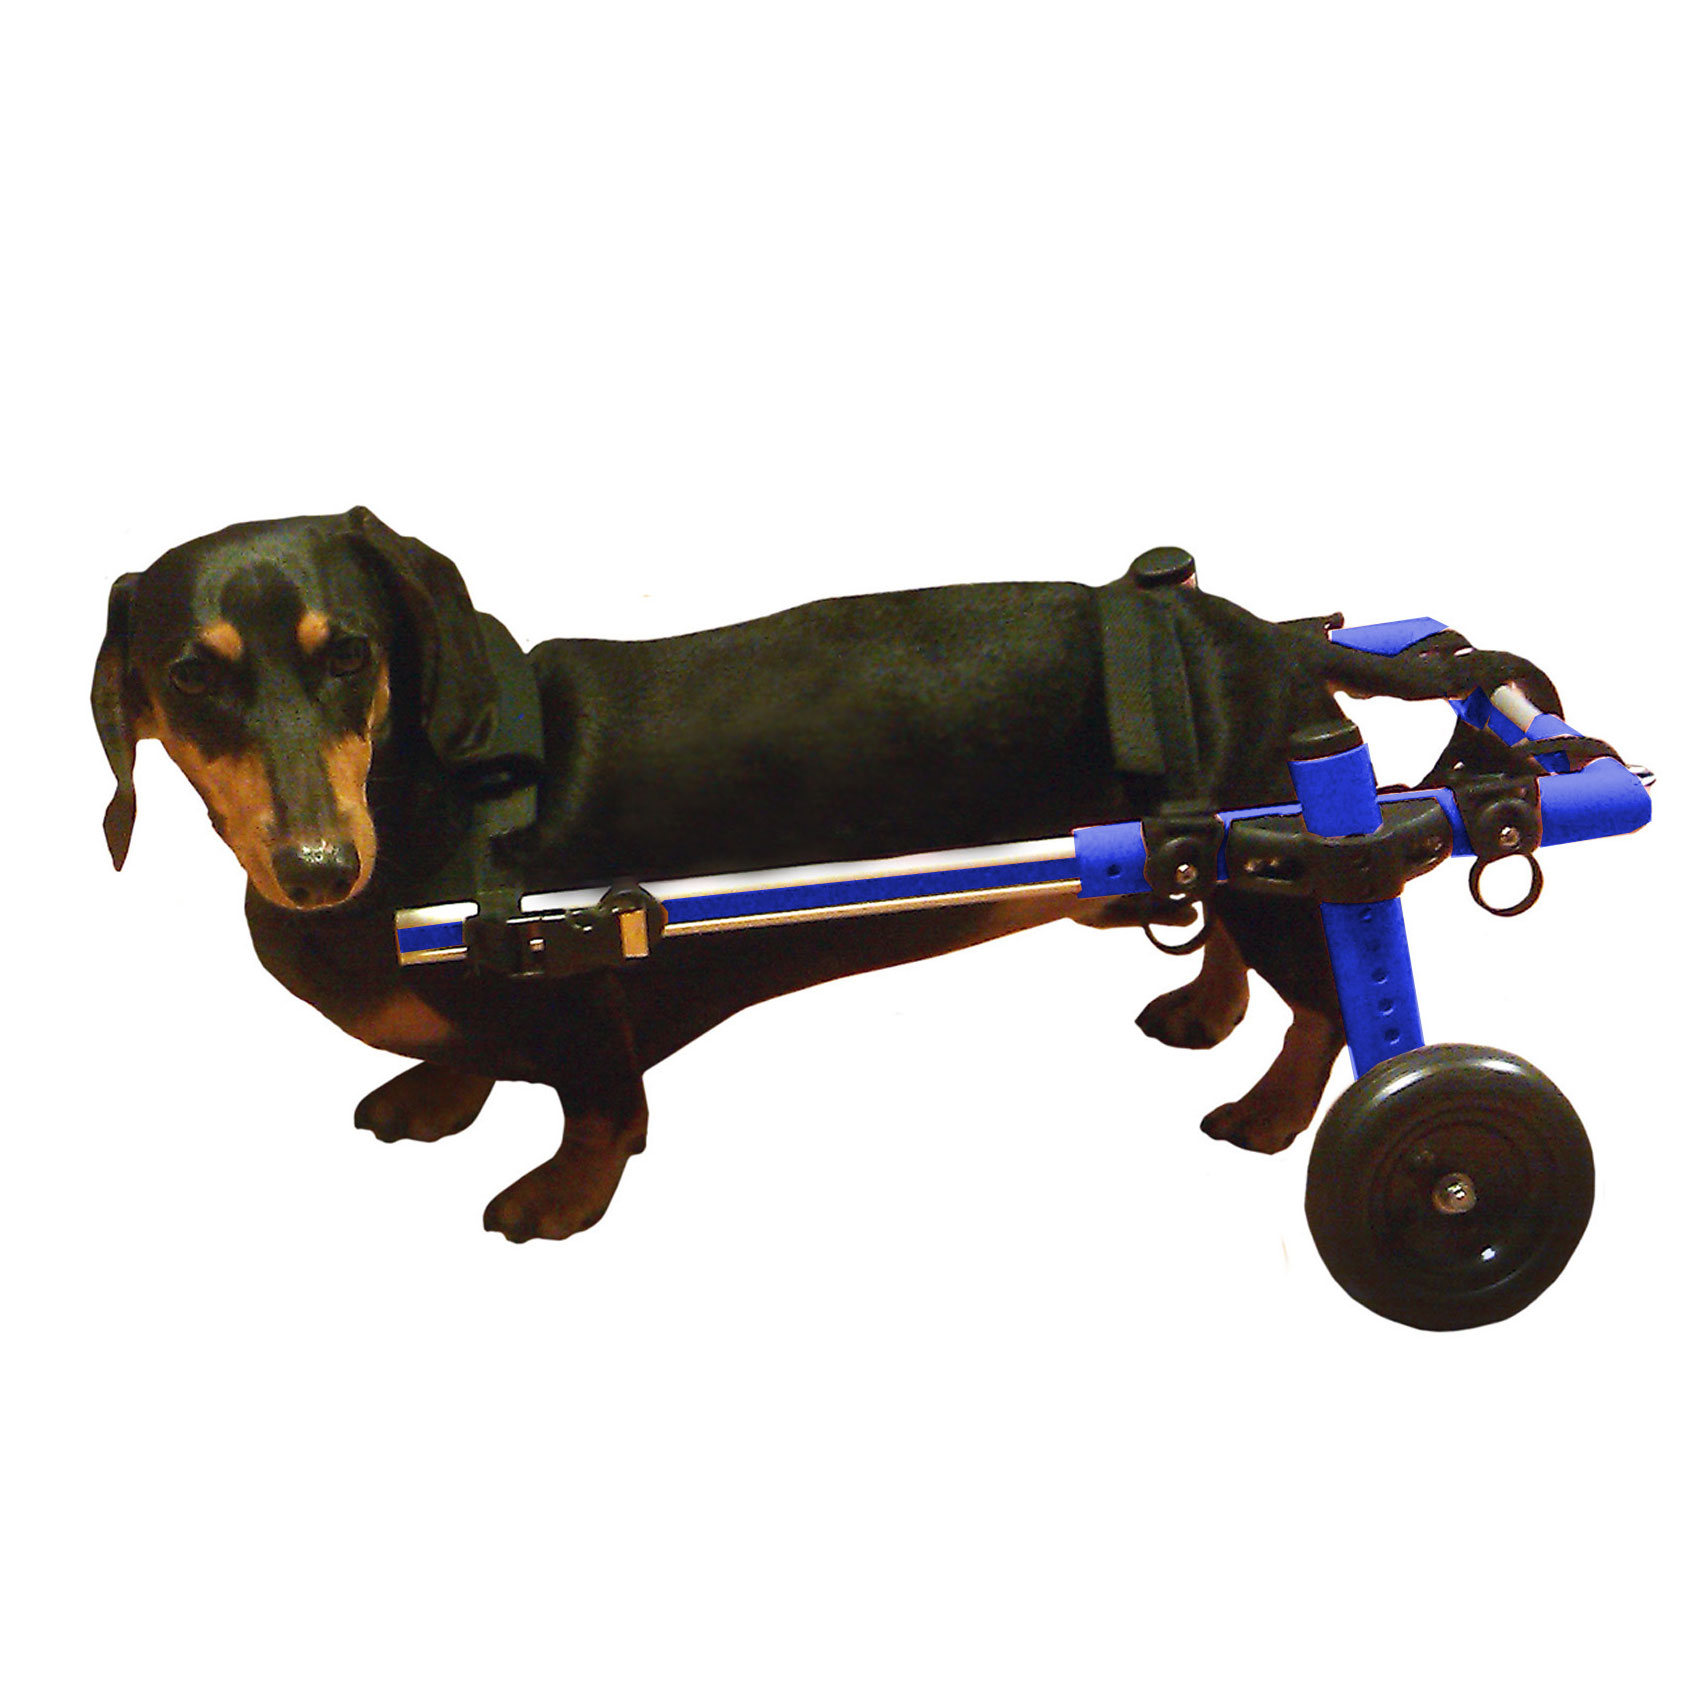 Dog Wheelchair For Small Dogs 8-25 lbs Blue - By Walkin' Wheels